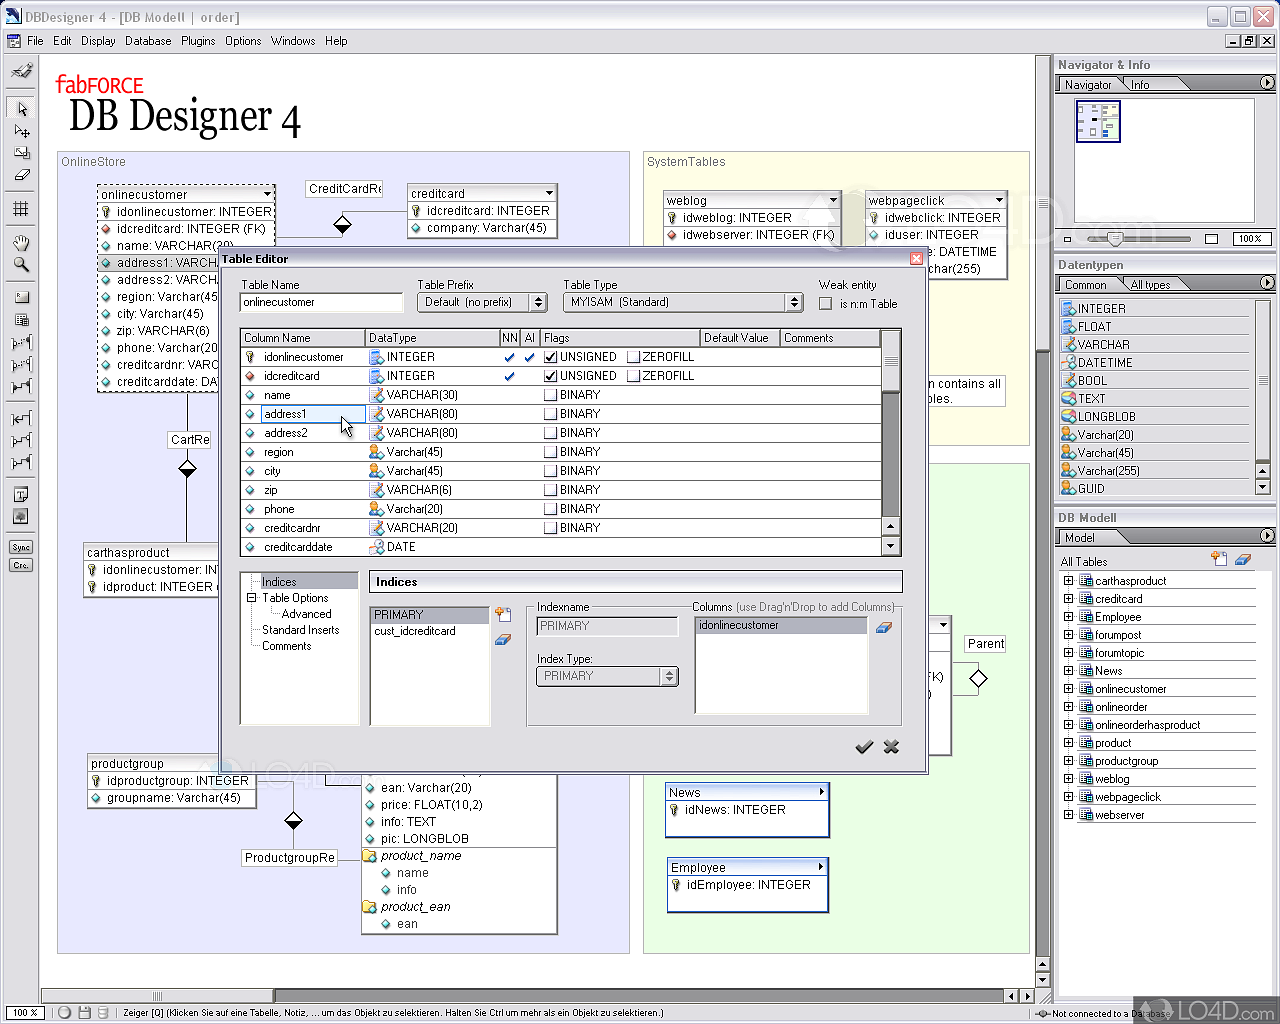 dbdesigner 4.0.5.6 pour windows